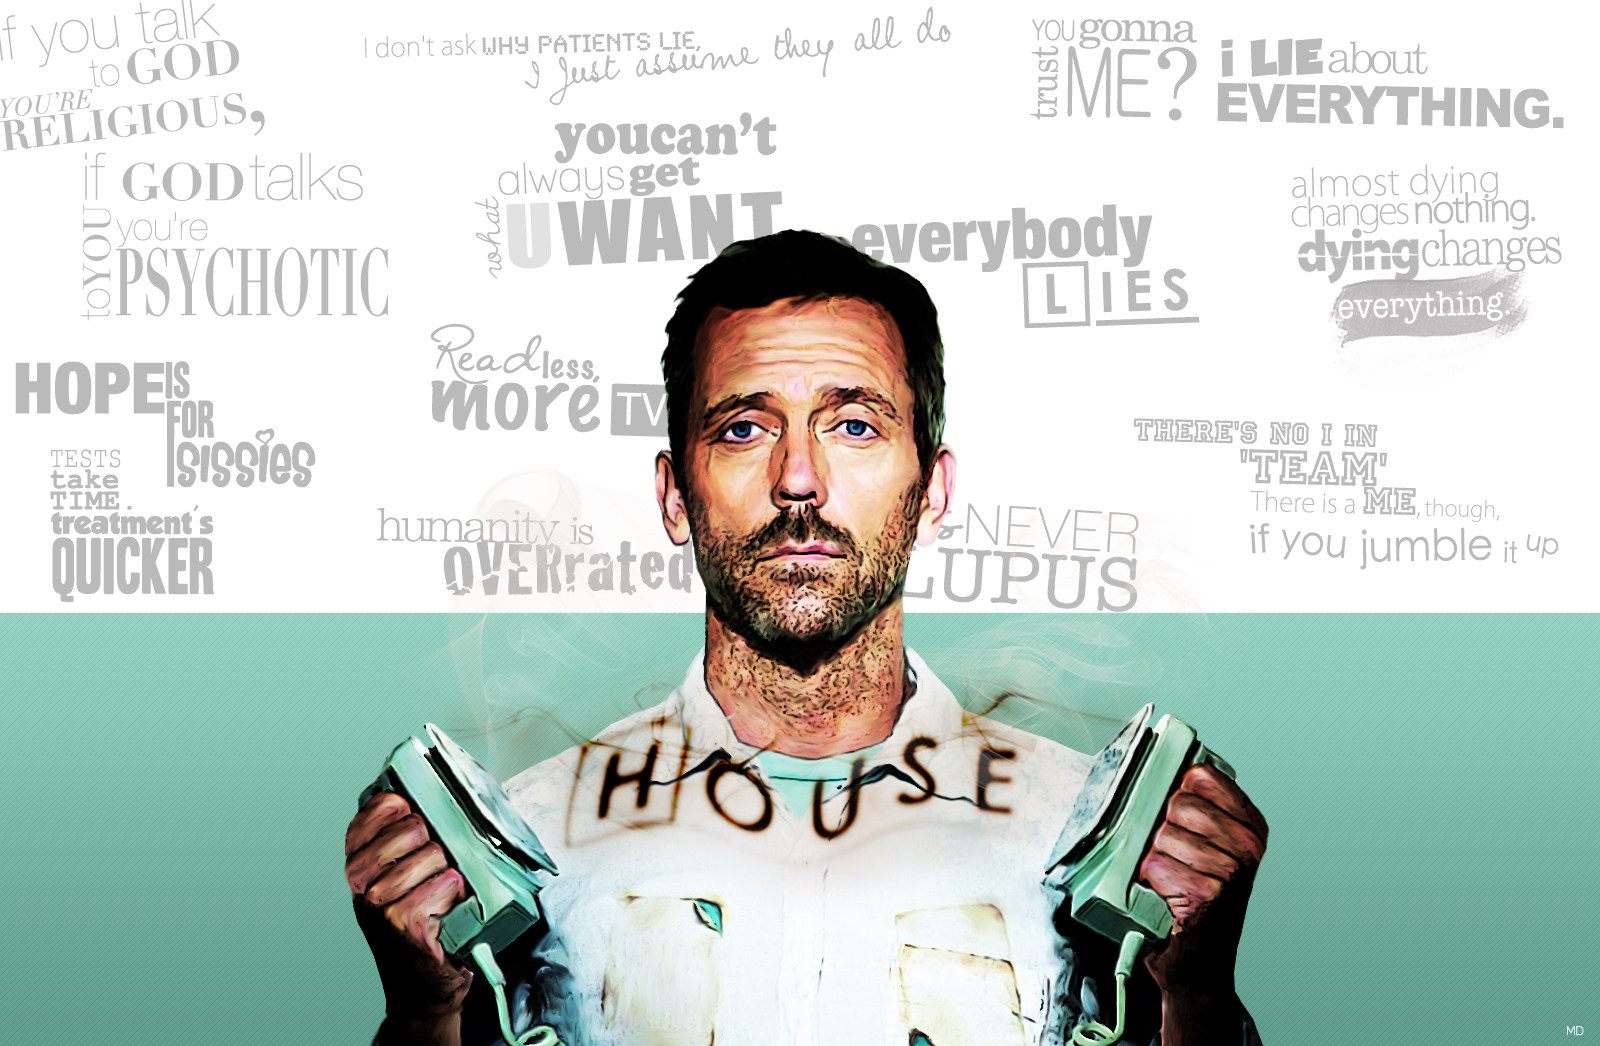 House quote #2